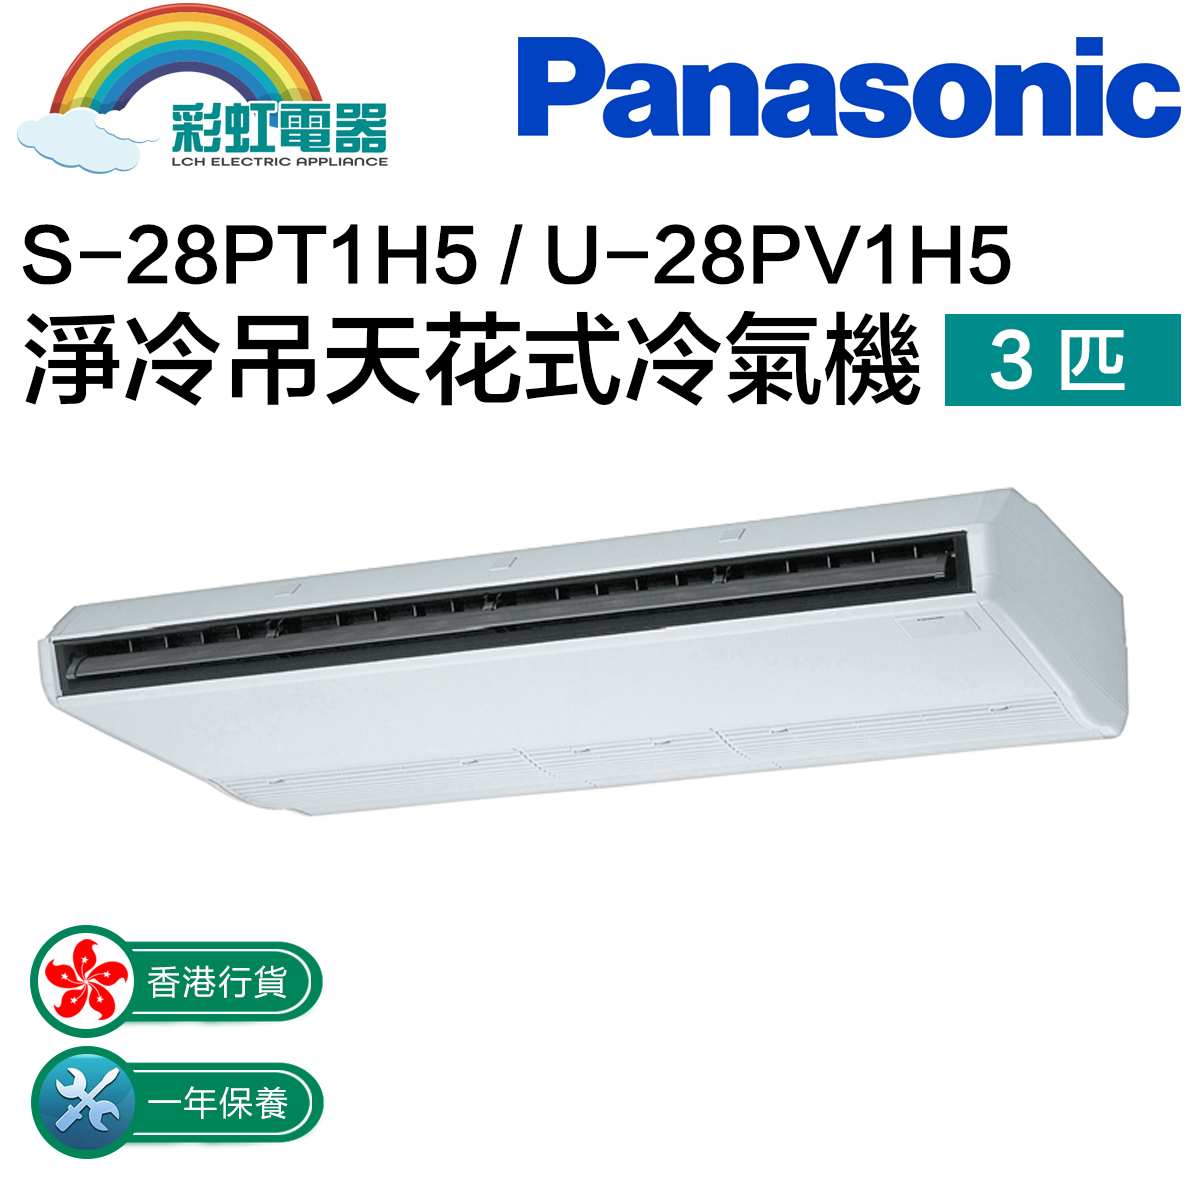 S-28PT1H5 / U-28PV1H5 Net cold ceiling fancy air conditioner 3 horse